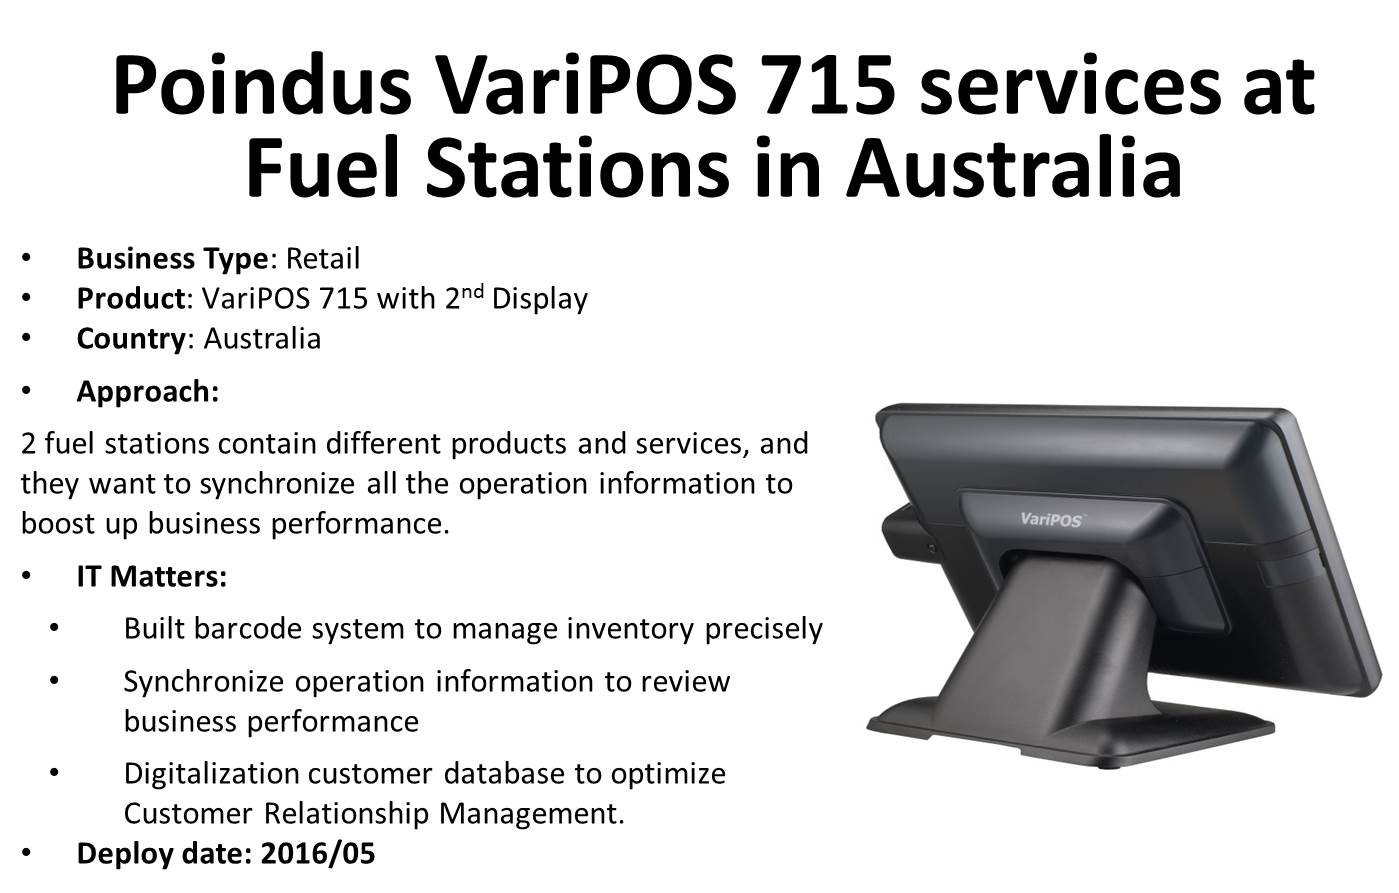 VariPOS 715 services at Fuel Stations in Australia